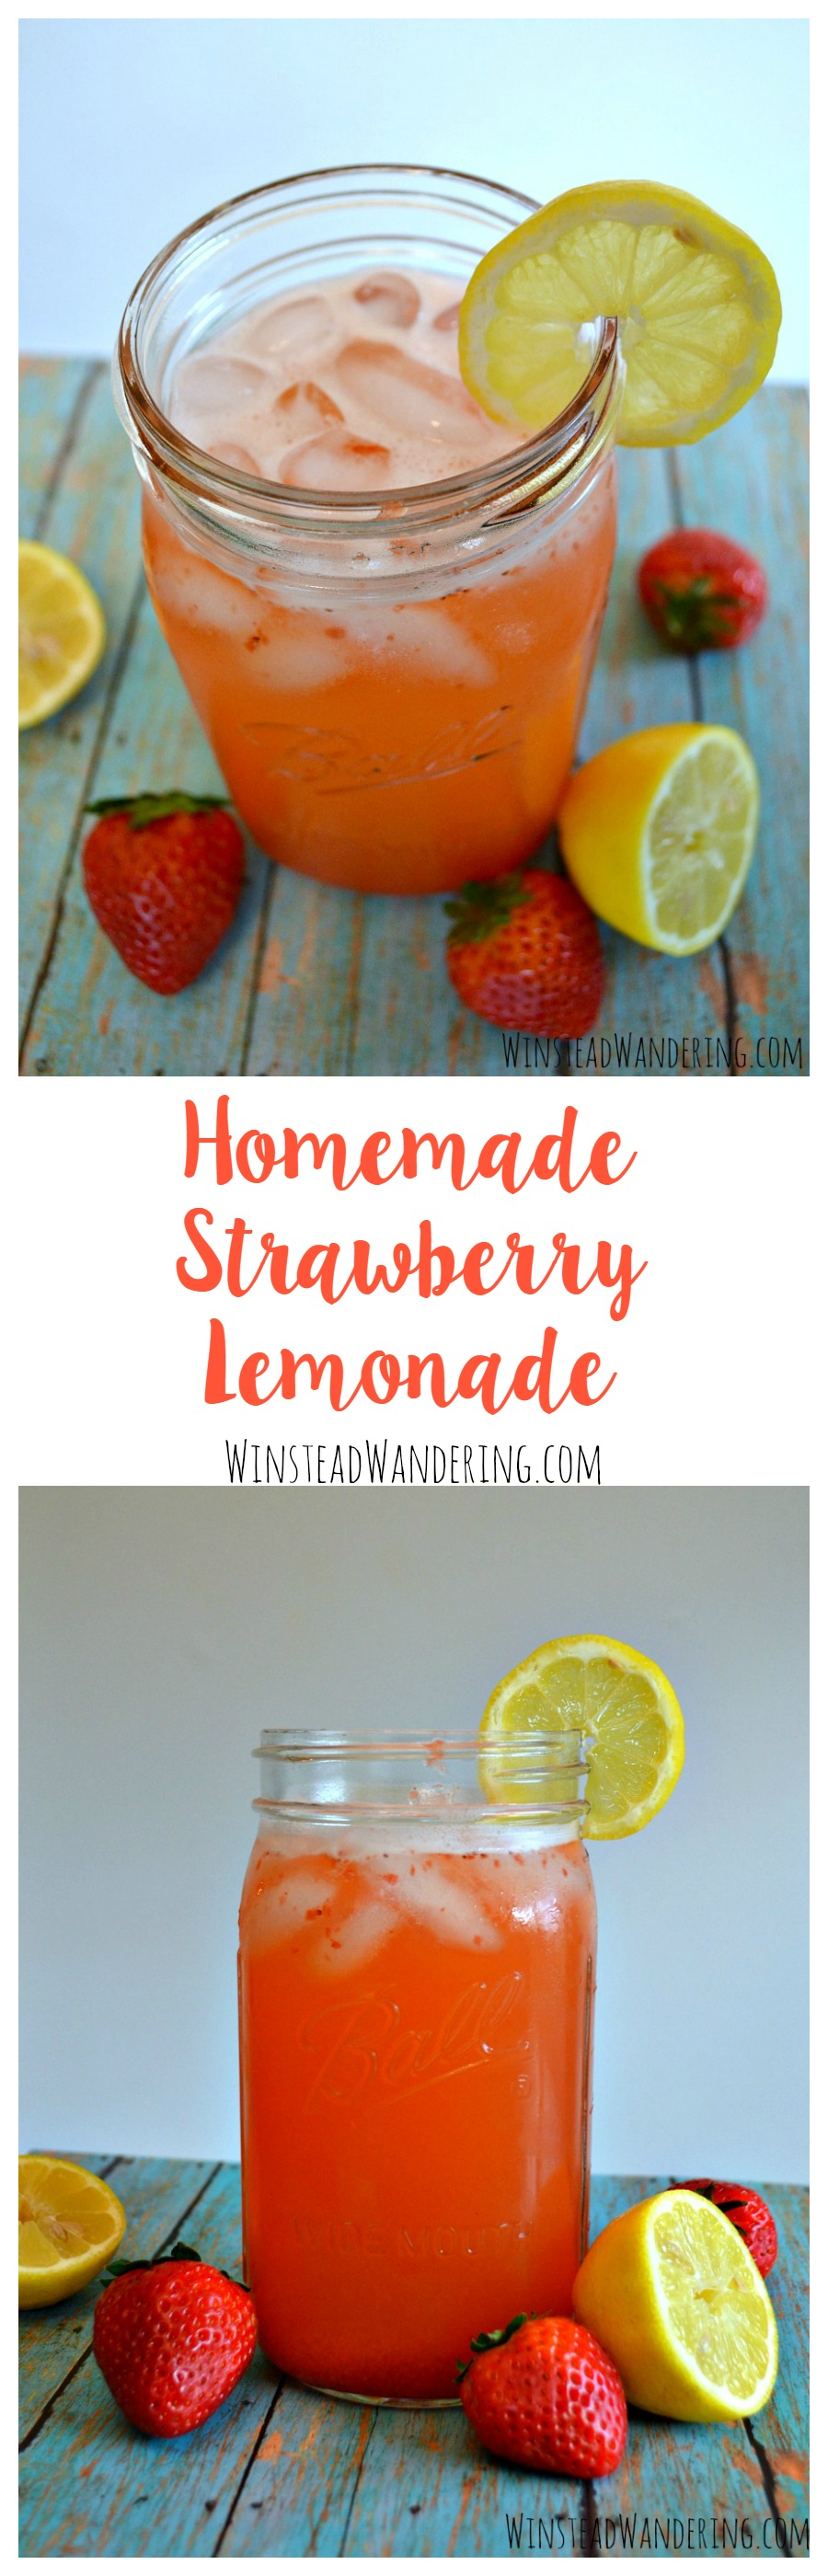 You don't have to head to your favorite restaurant to get an over-priced glass of this stuff. You can whip up a sweet, refreshing glass of homemade strawberry lemonade at home.